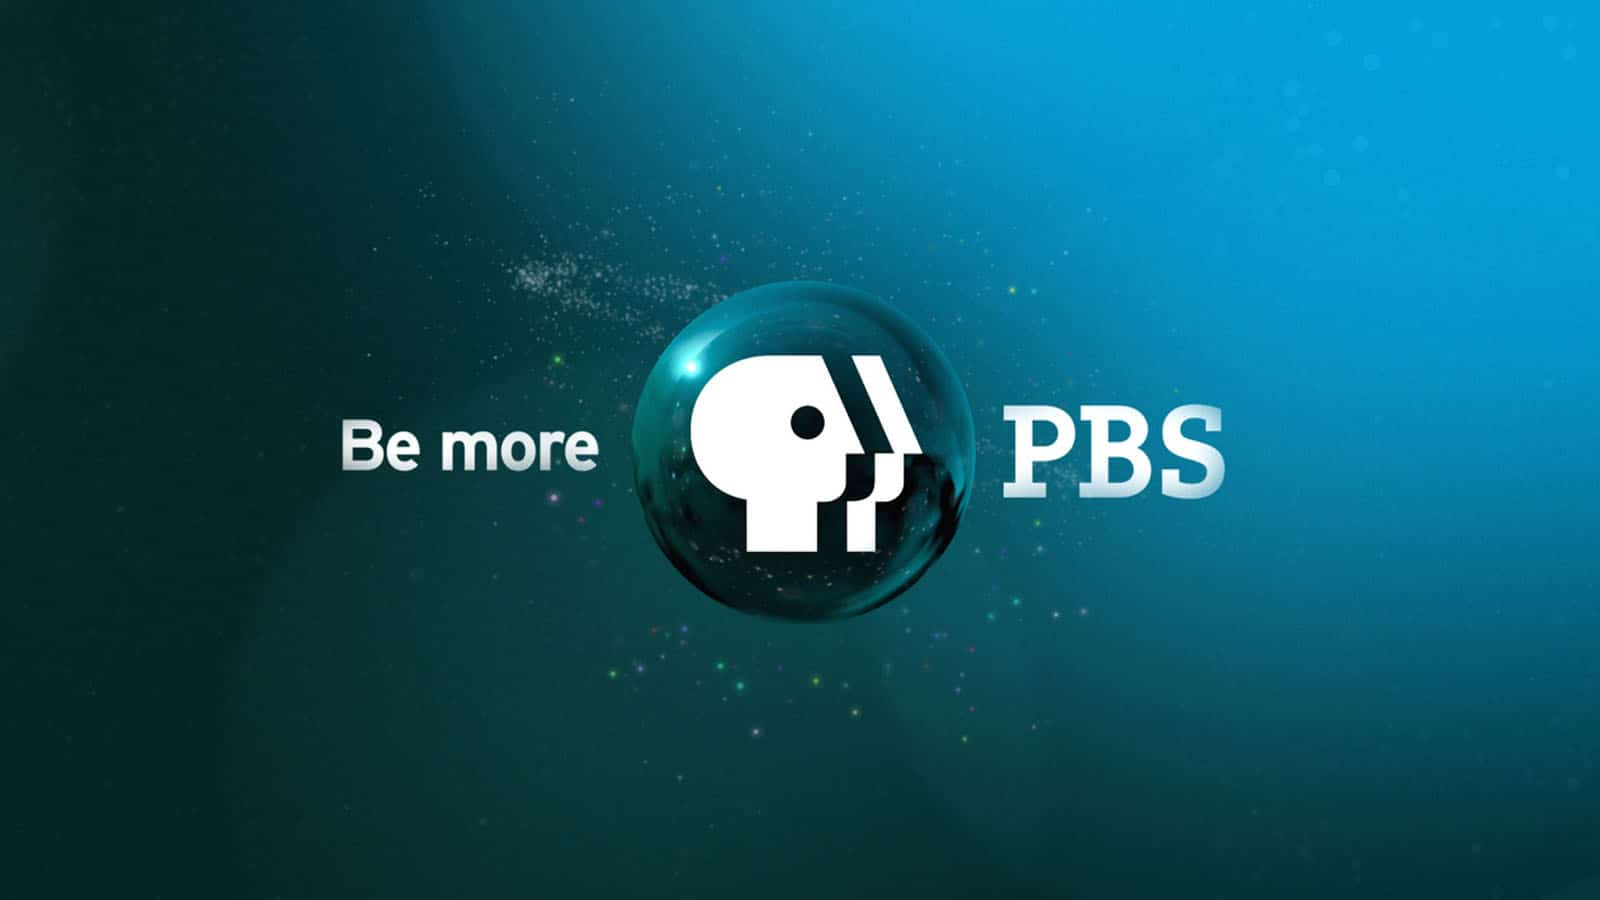 pbs logo on blue background